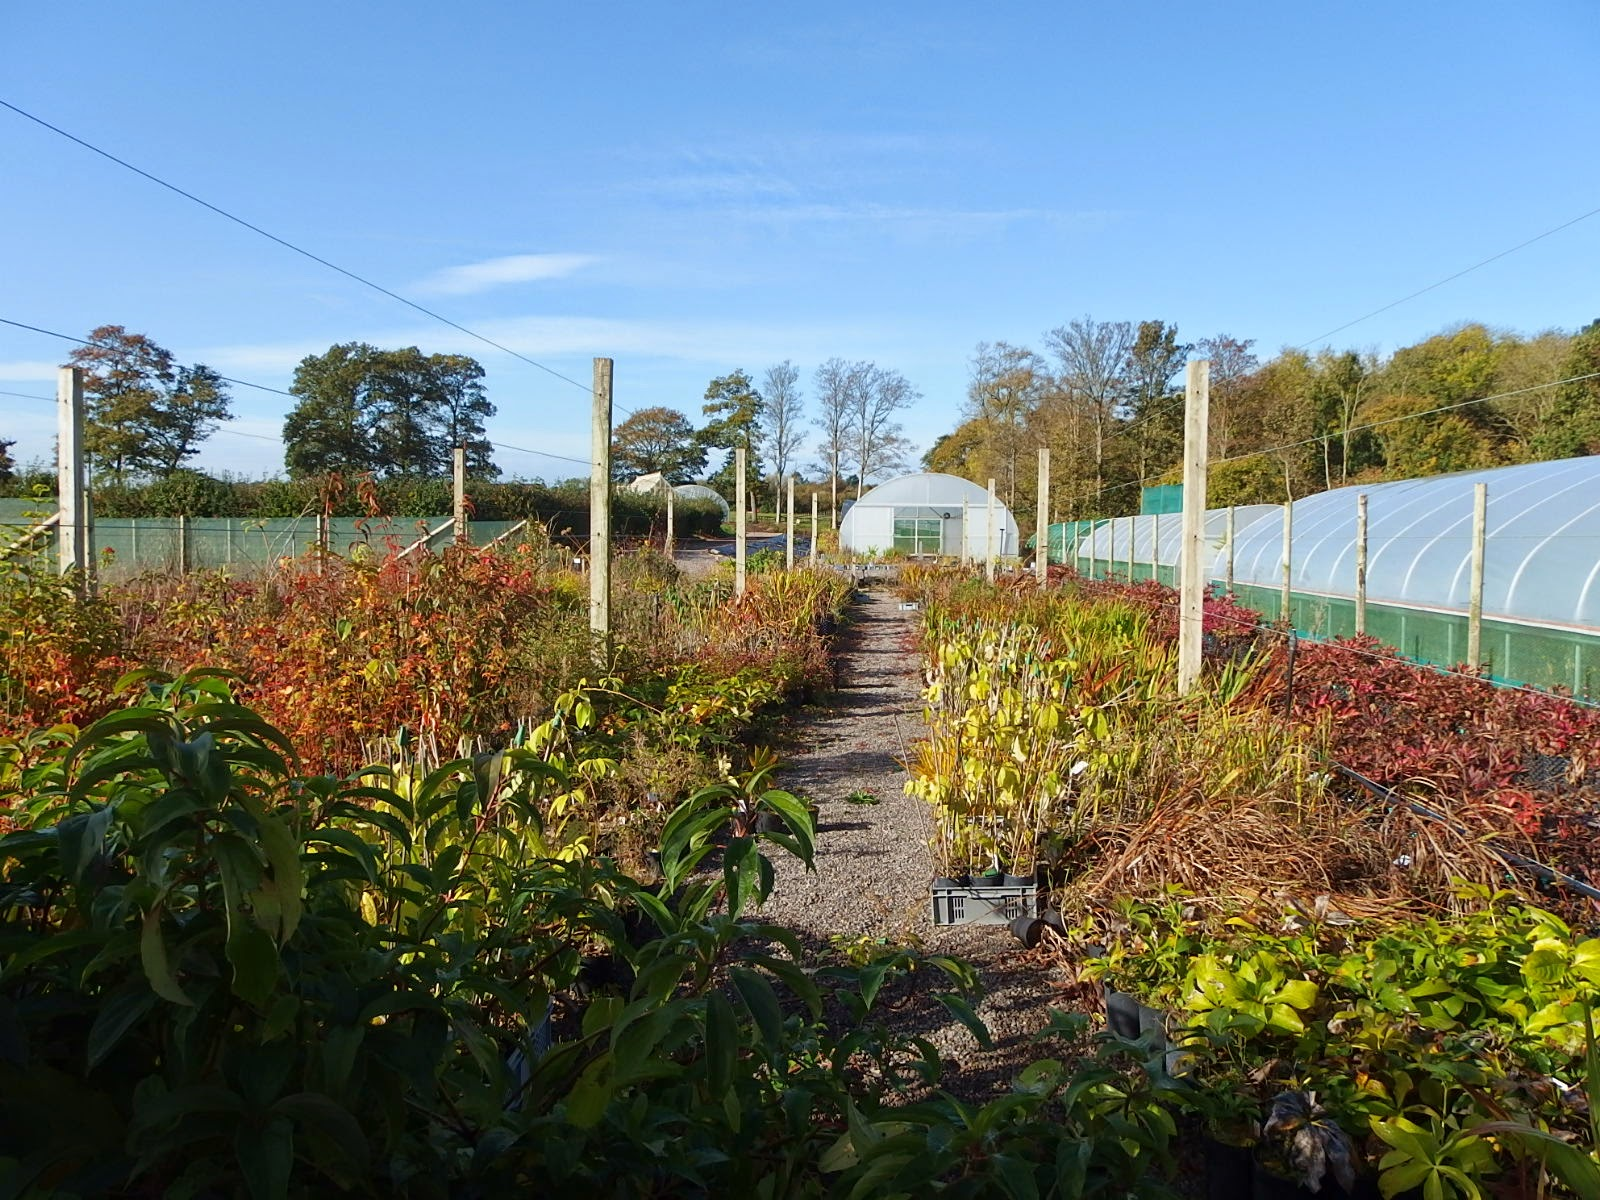 View of the nursery from the gate